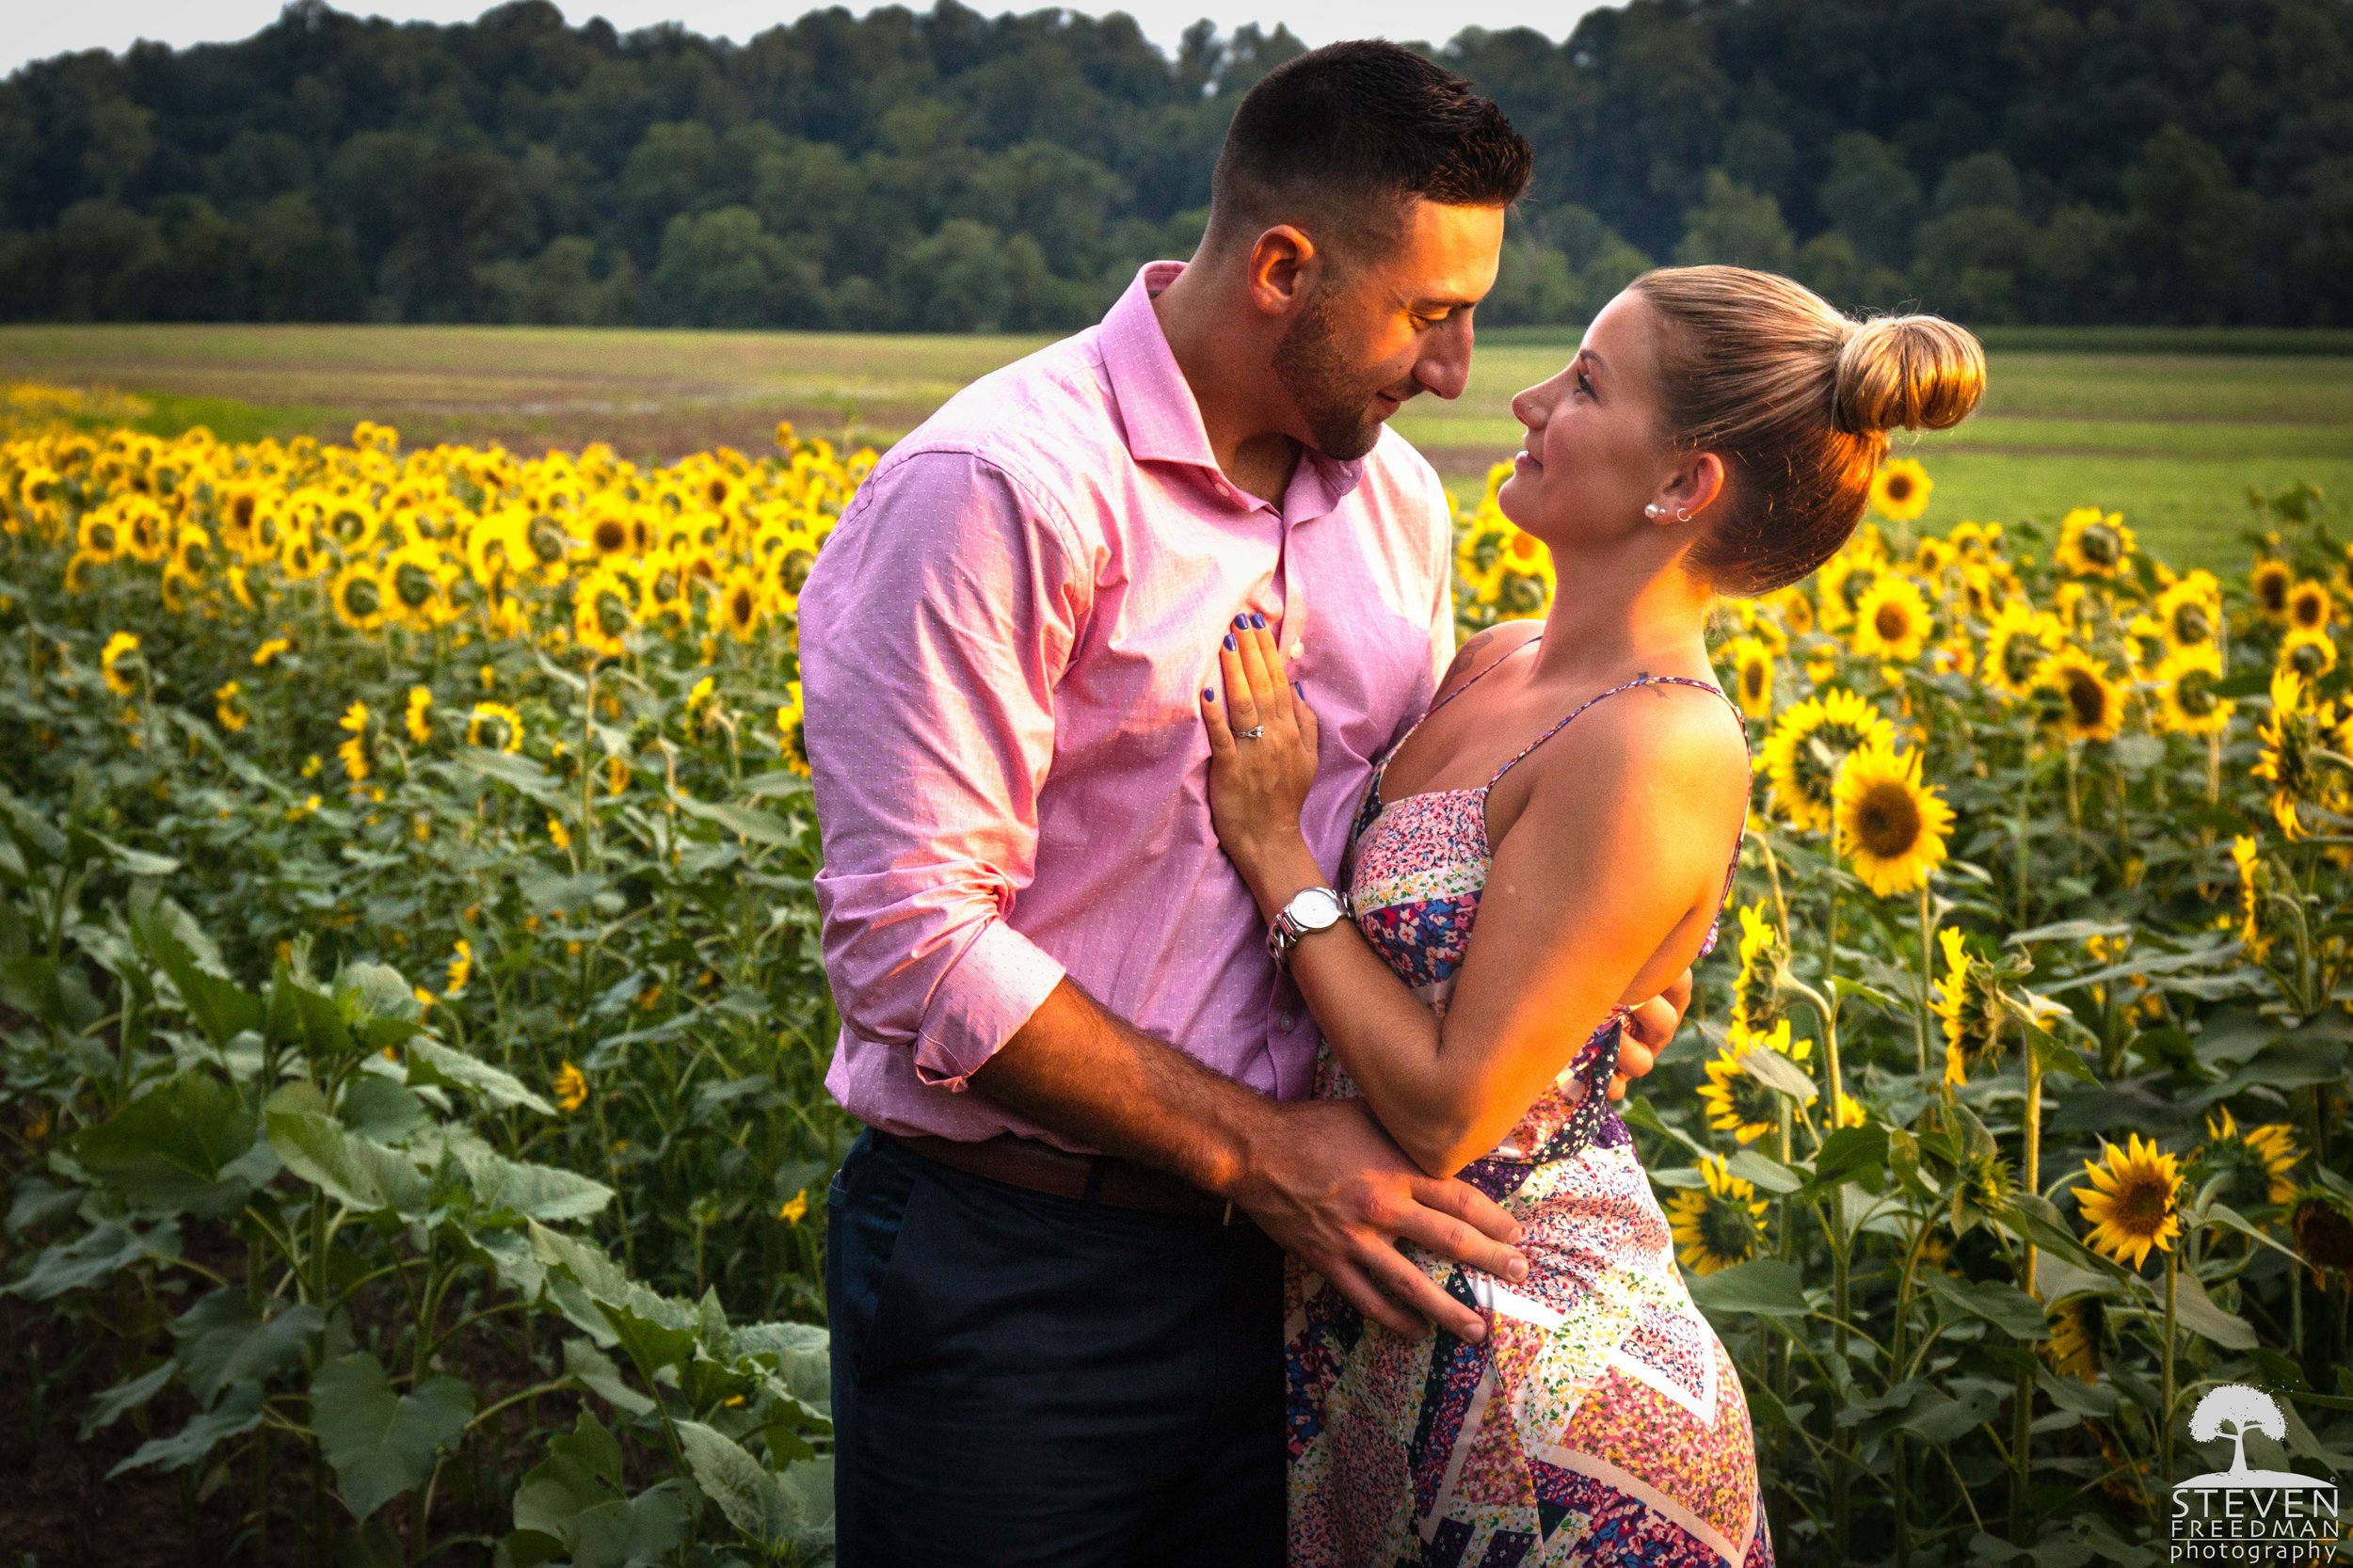 The clouds opened up and provided us with incredible warm light adding to Kasey and Anthony's glow.